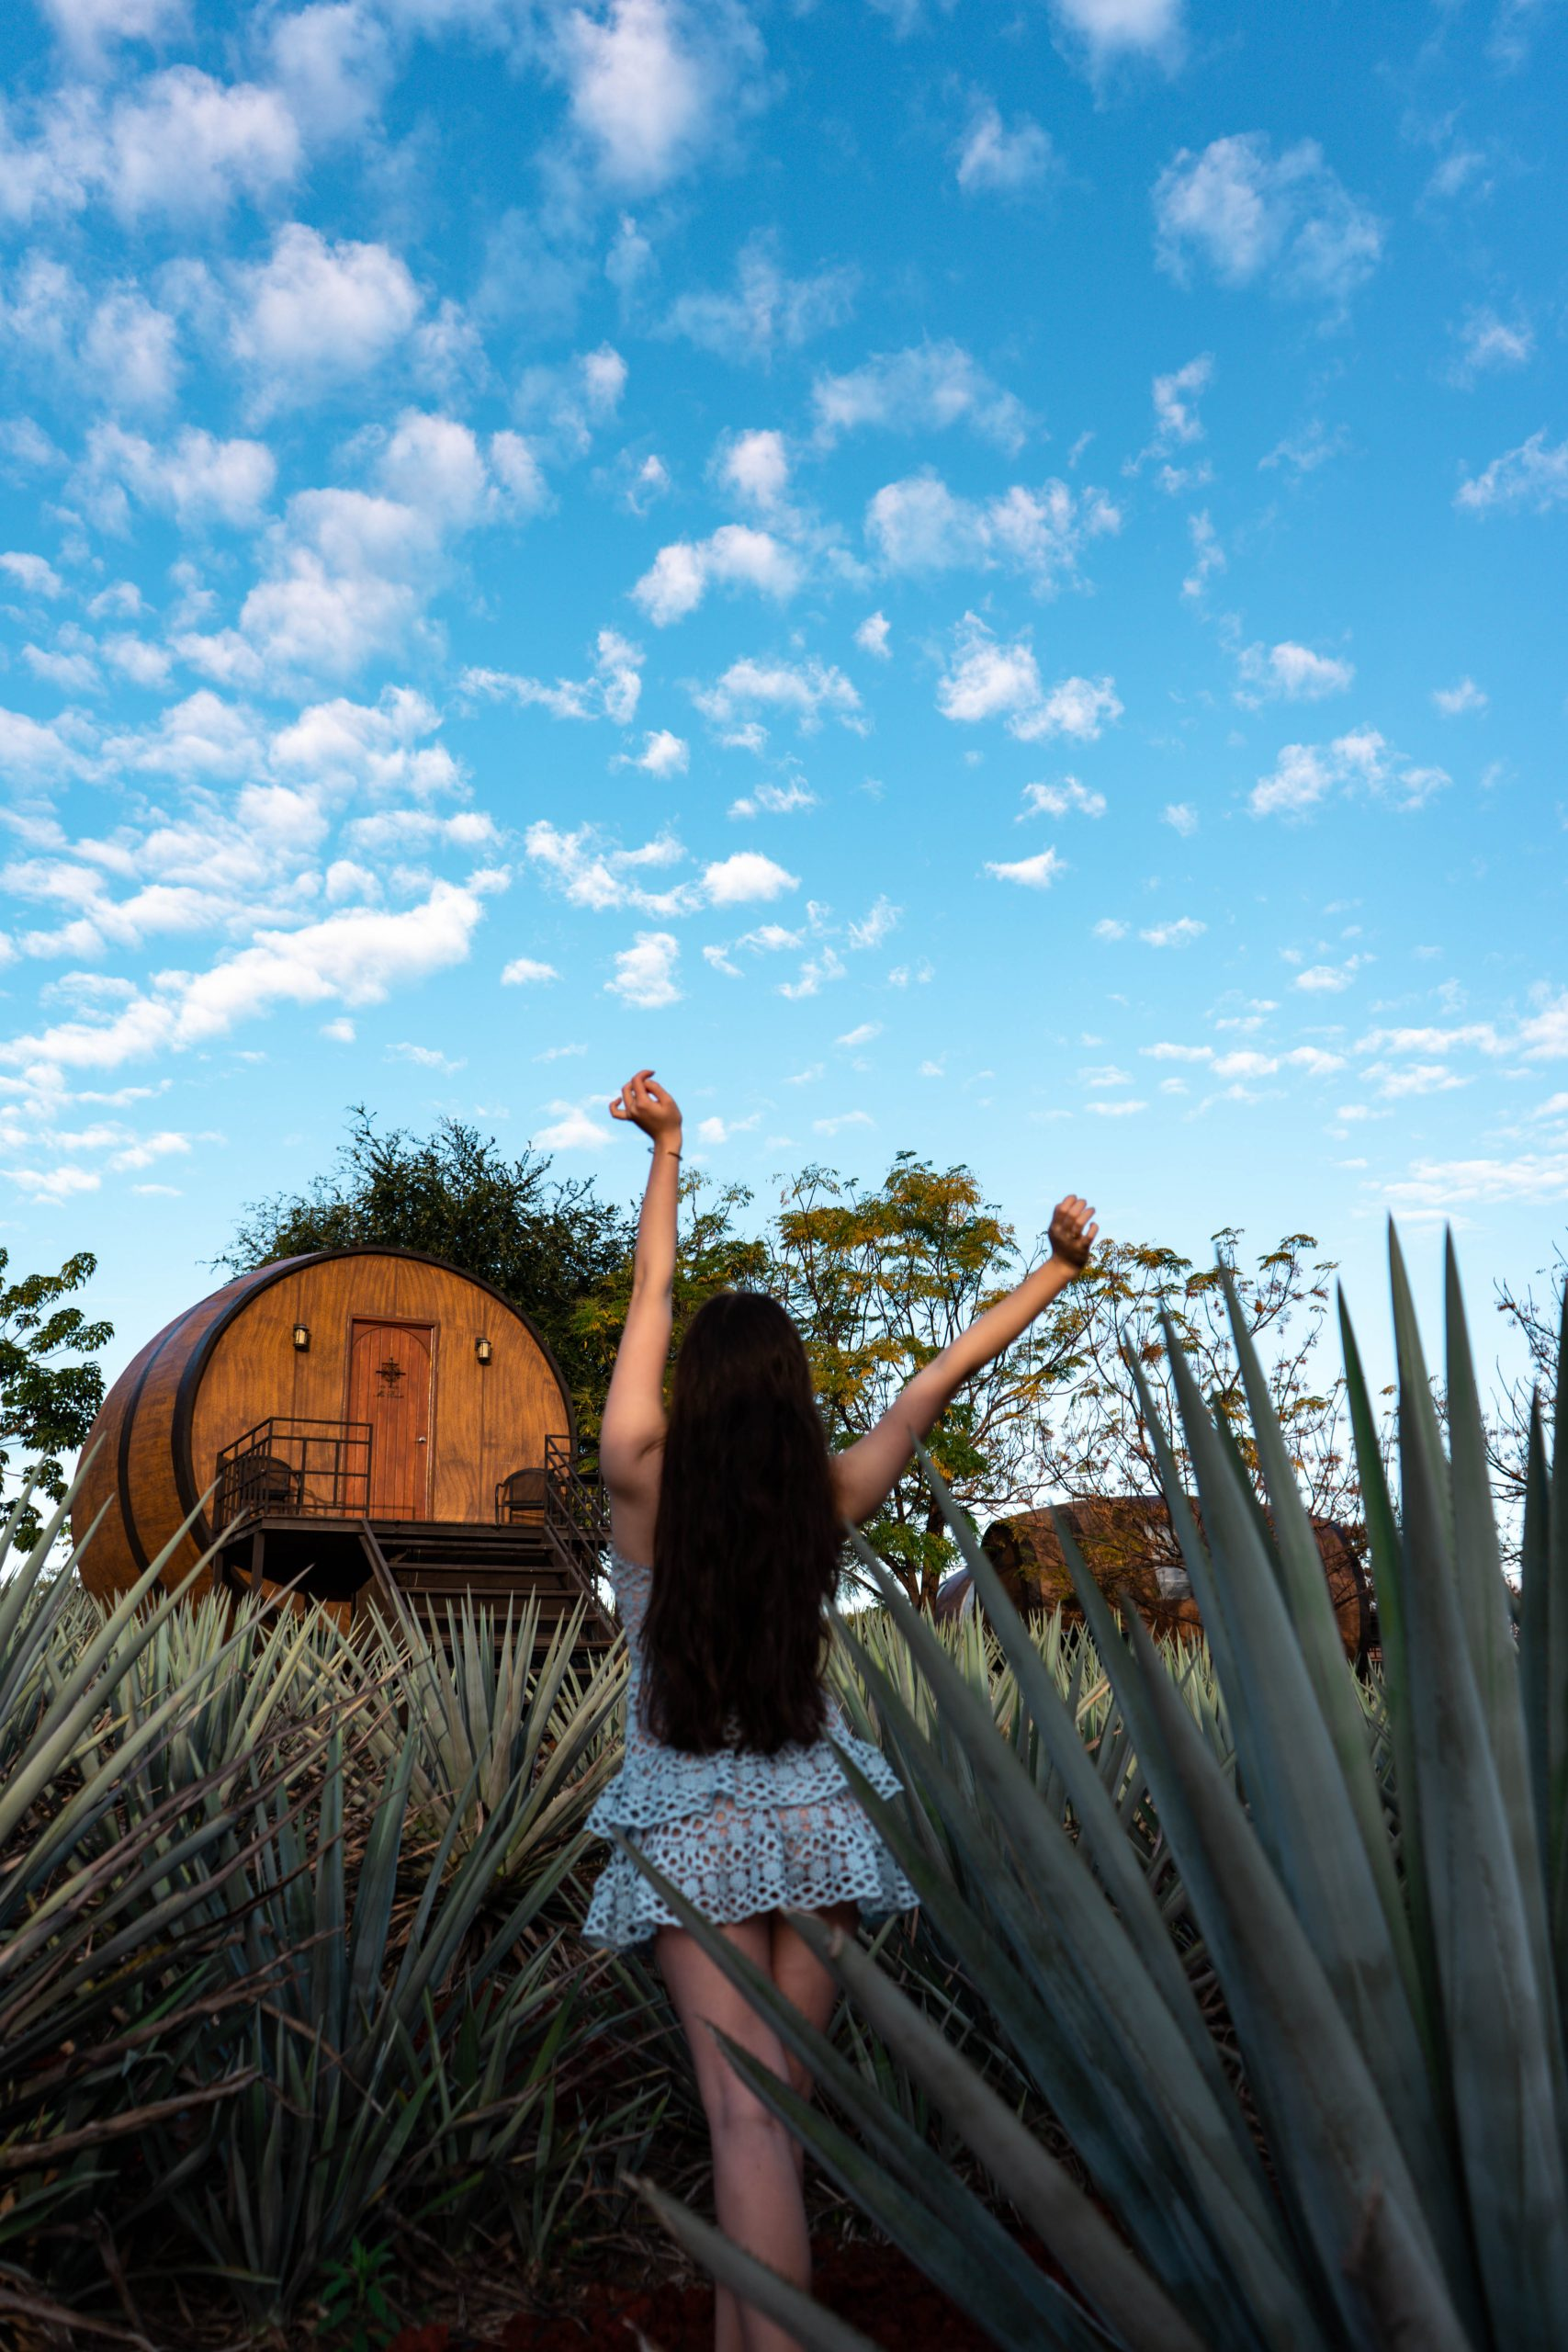 blue agave field tequila hotel mexico matices hotel de barricas barrel hotel tequila sunrise jalisco mexico lulus beauty and lace pale blue crochet mini dress gucci marmont metallic gold heels sandals unique luxury boutique hotel travel blogger travel guide instagrammable hotel